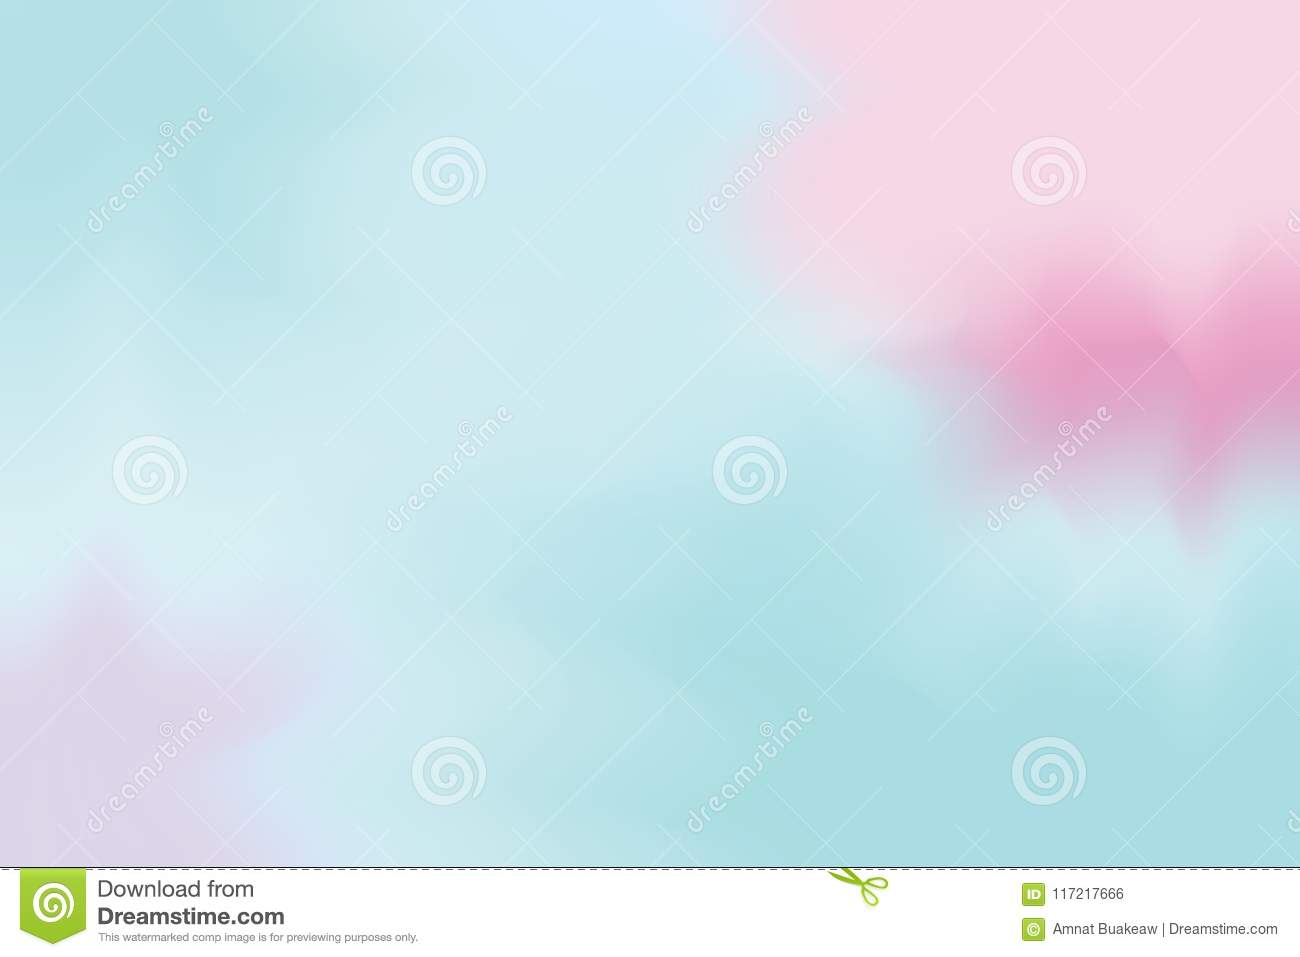 Blue Pink Soft Color Mixed Background Painting Art Pastel Abstract Colorful Art Wallpaper Stock Illustration Illustration Of Texture Shape 117217666